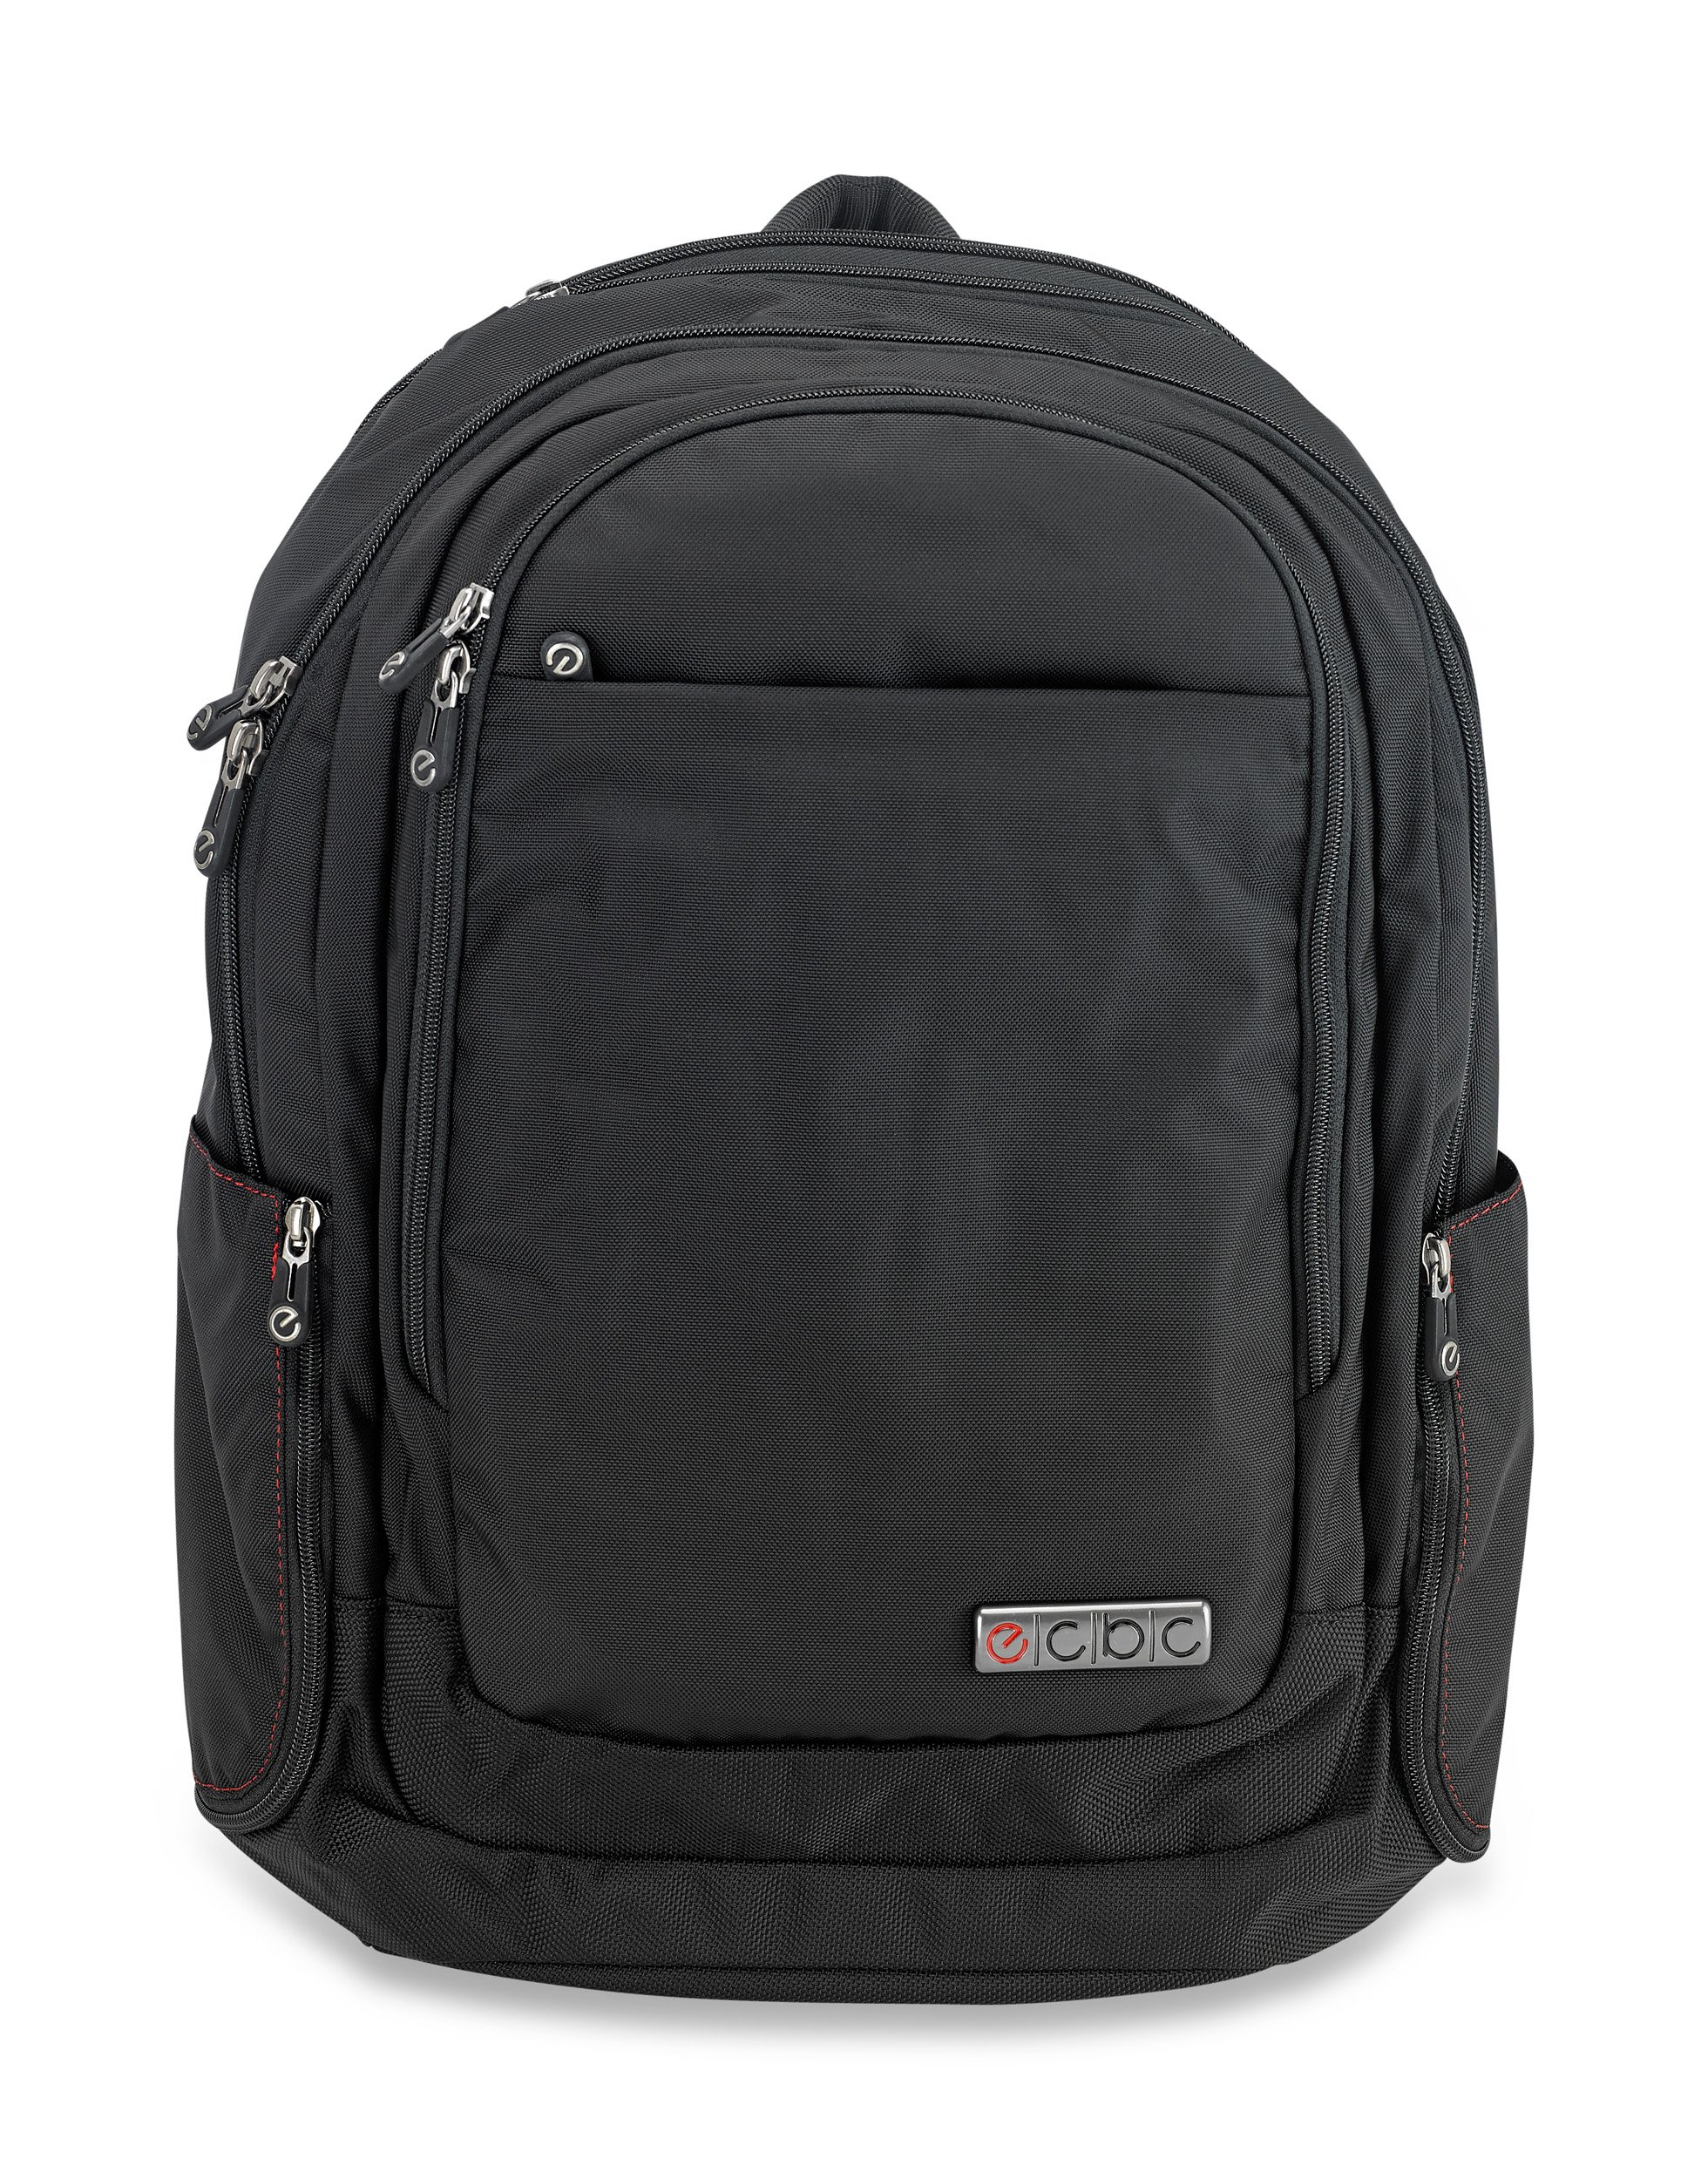 ECBC Javelin - Backpack Computer Bag - Black (B7102-10) Daypack for Laptops, MacBooks & Devices Up to 16.5'' - Travel, School or Business Backpack for Men & Women - Premium Quality, TSA FastPass Friendly by ECBC